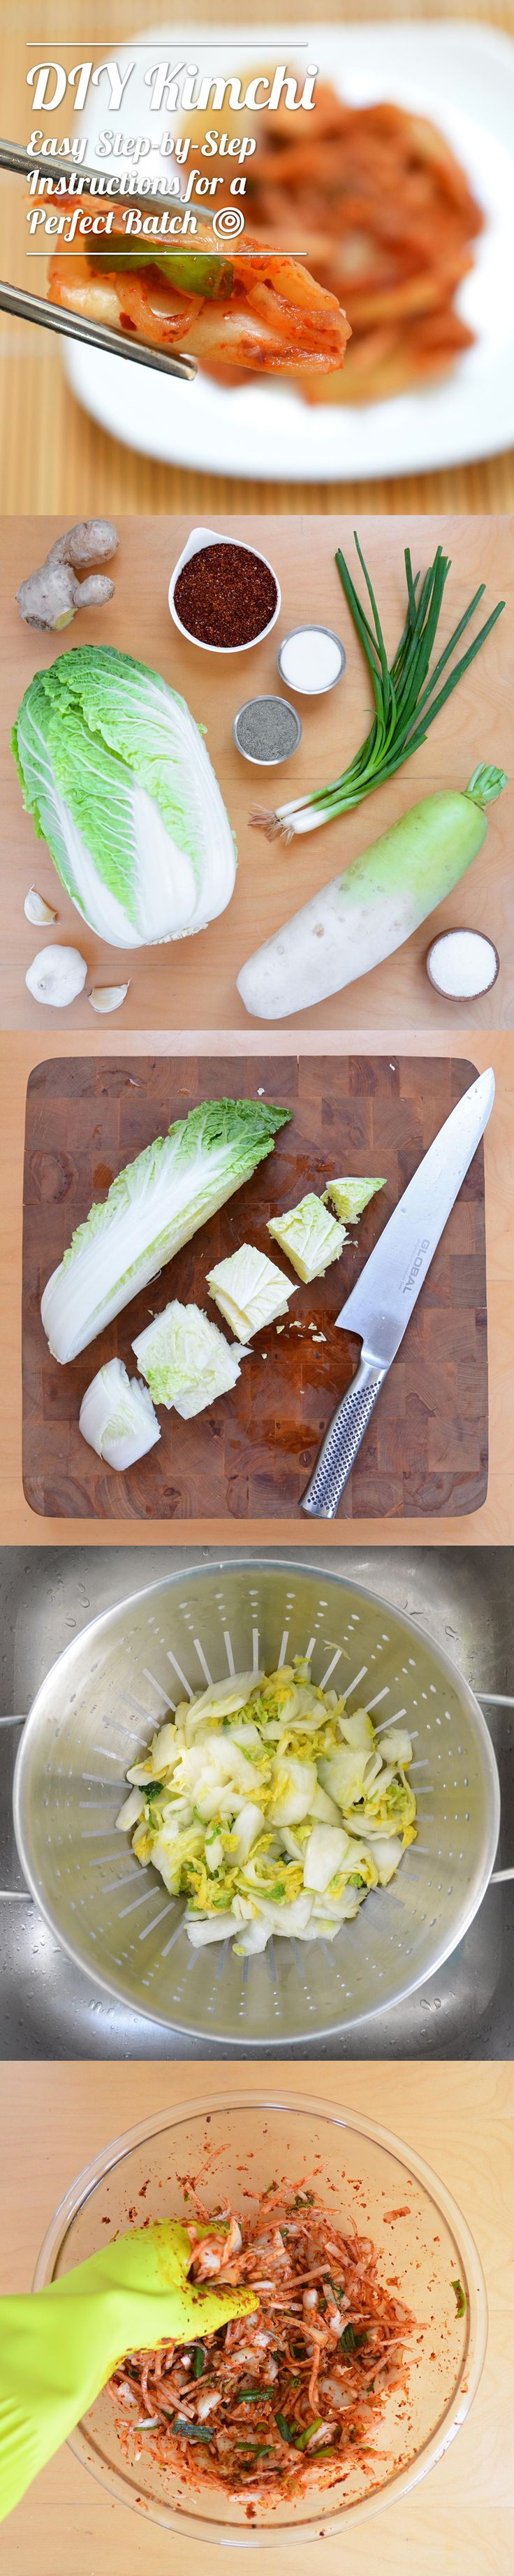 You'd never guess that making DIY Homemade Kimchi was so easy! One of my favorite easy recipes featuring napa cabbage. (Leftover Cabbage Recipes)